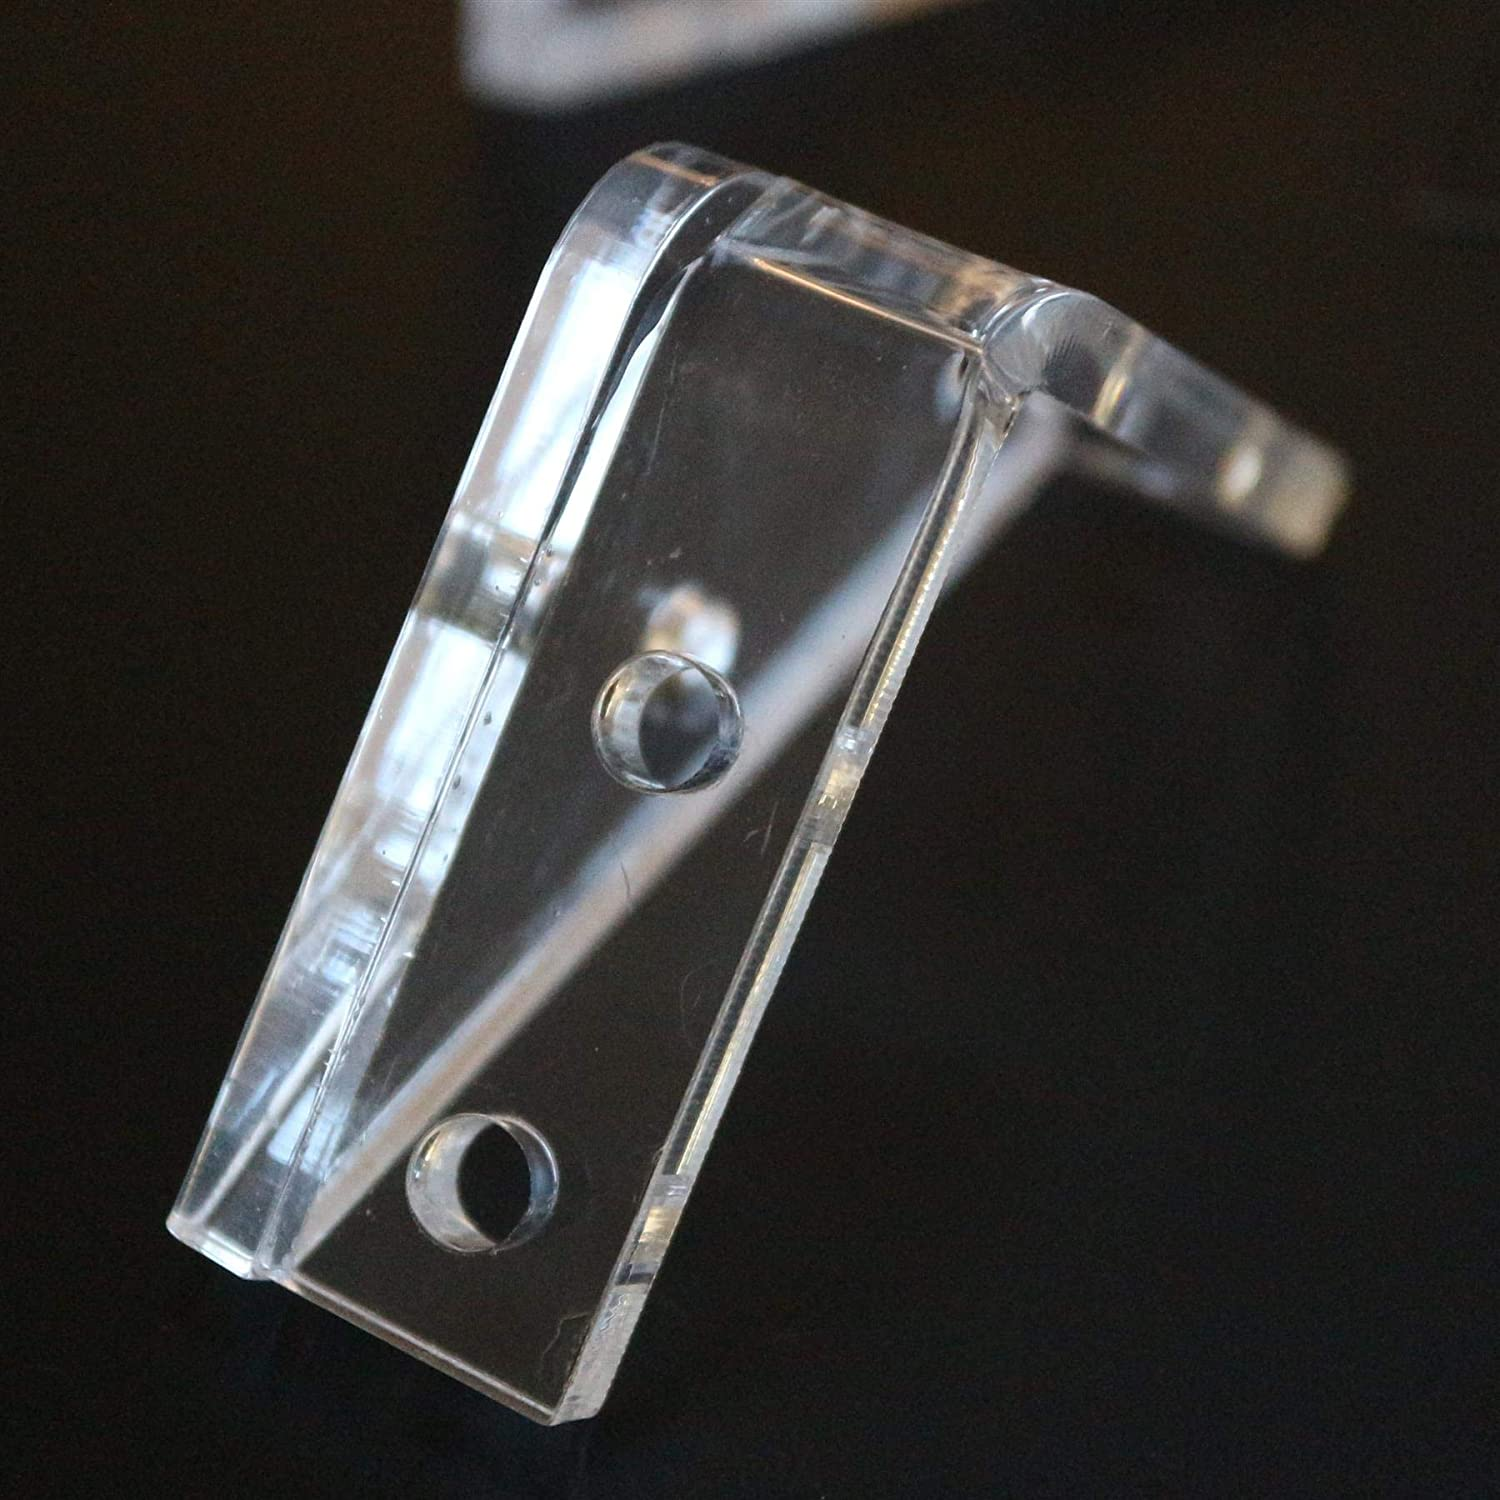 Corner Corner Brackets 4 x V3 Clear Transparent Perspex Acrylic 20x M5 Bolts Clear Right Angle Bracket 5mm thickness